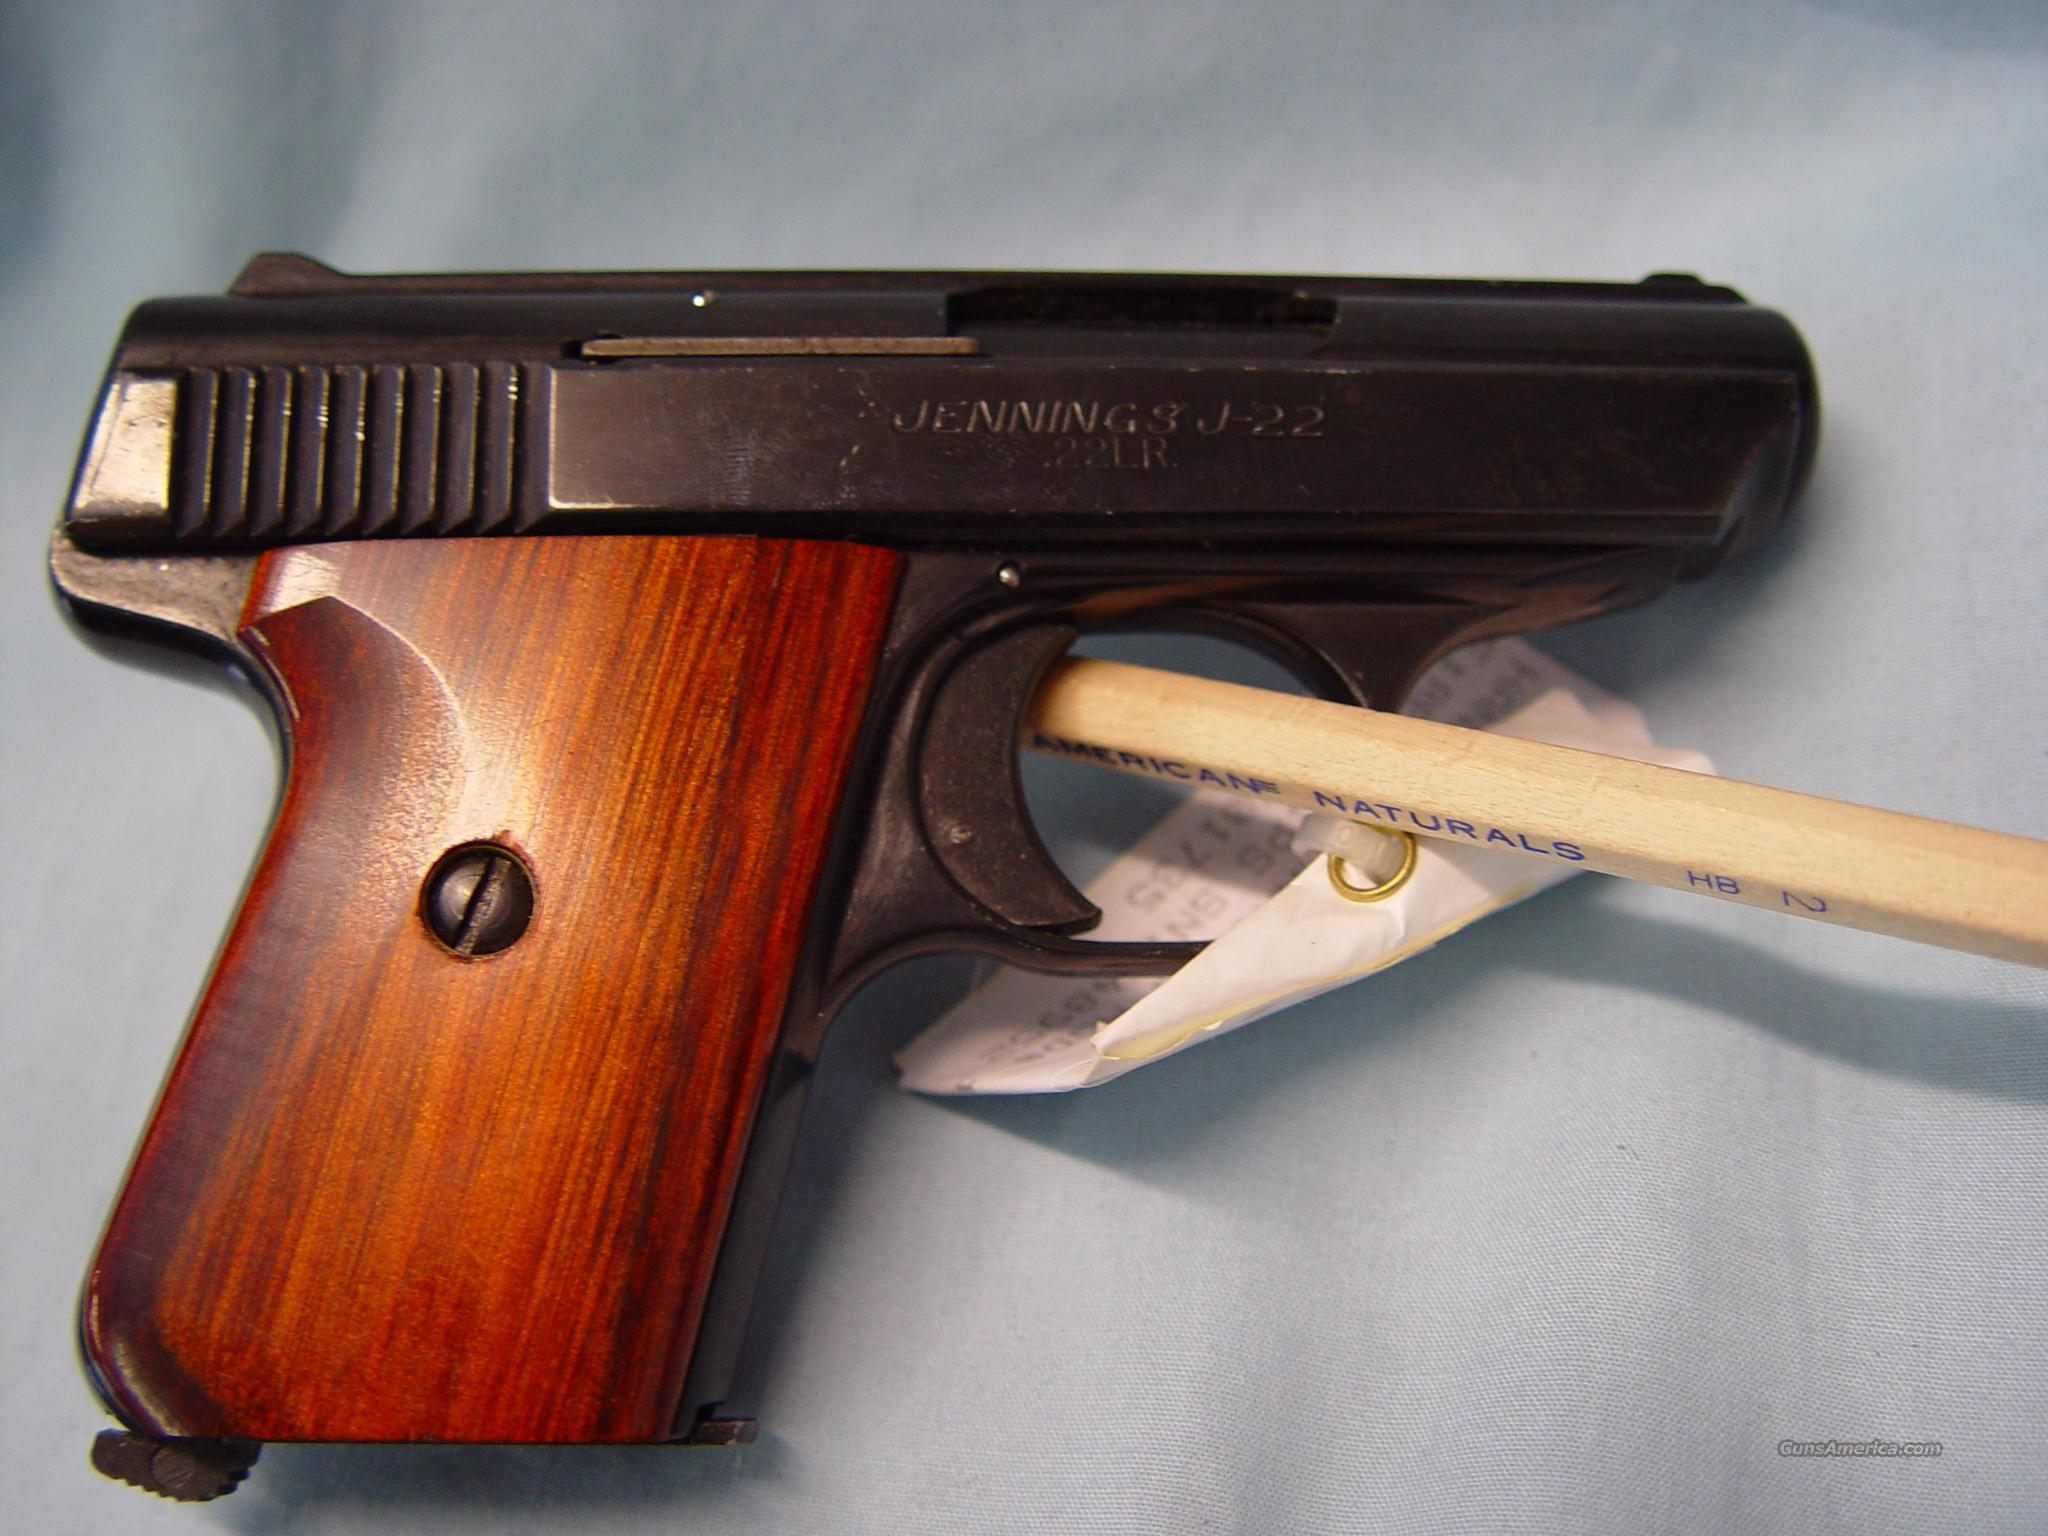 "Jennings Firearms Mod# J-22  2.5"" .22 lr cal pistol w/dark brown wood grips   Guns > Pistols > Jennings Pistols"